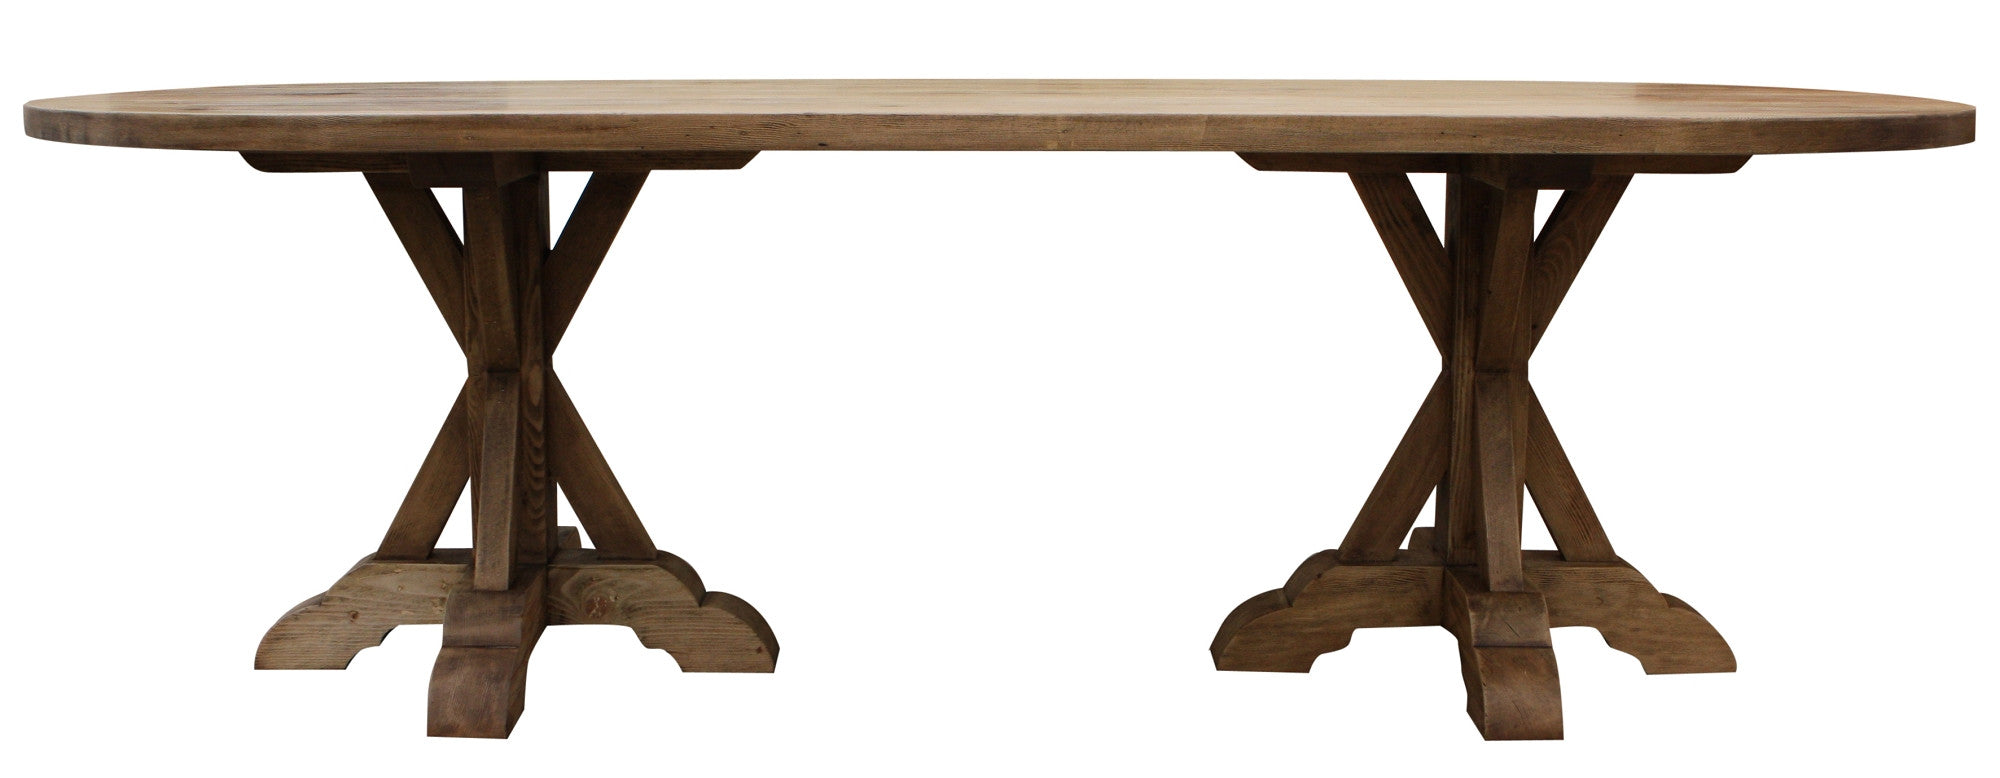 Reclaimed Wood Double Pedestal Dining Table